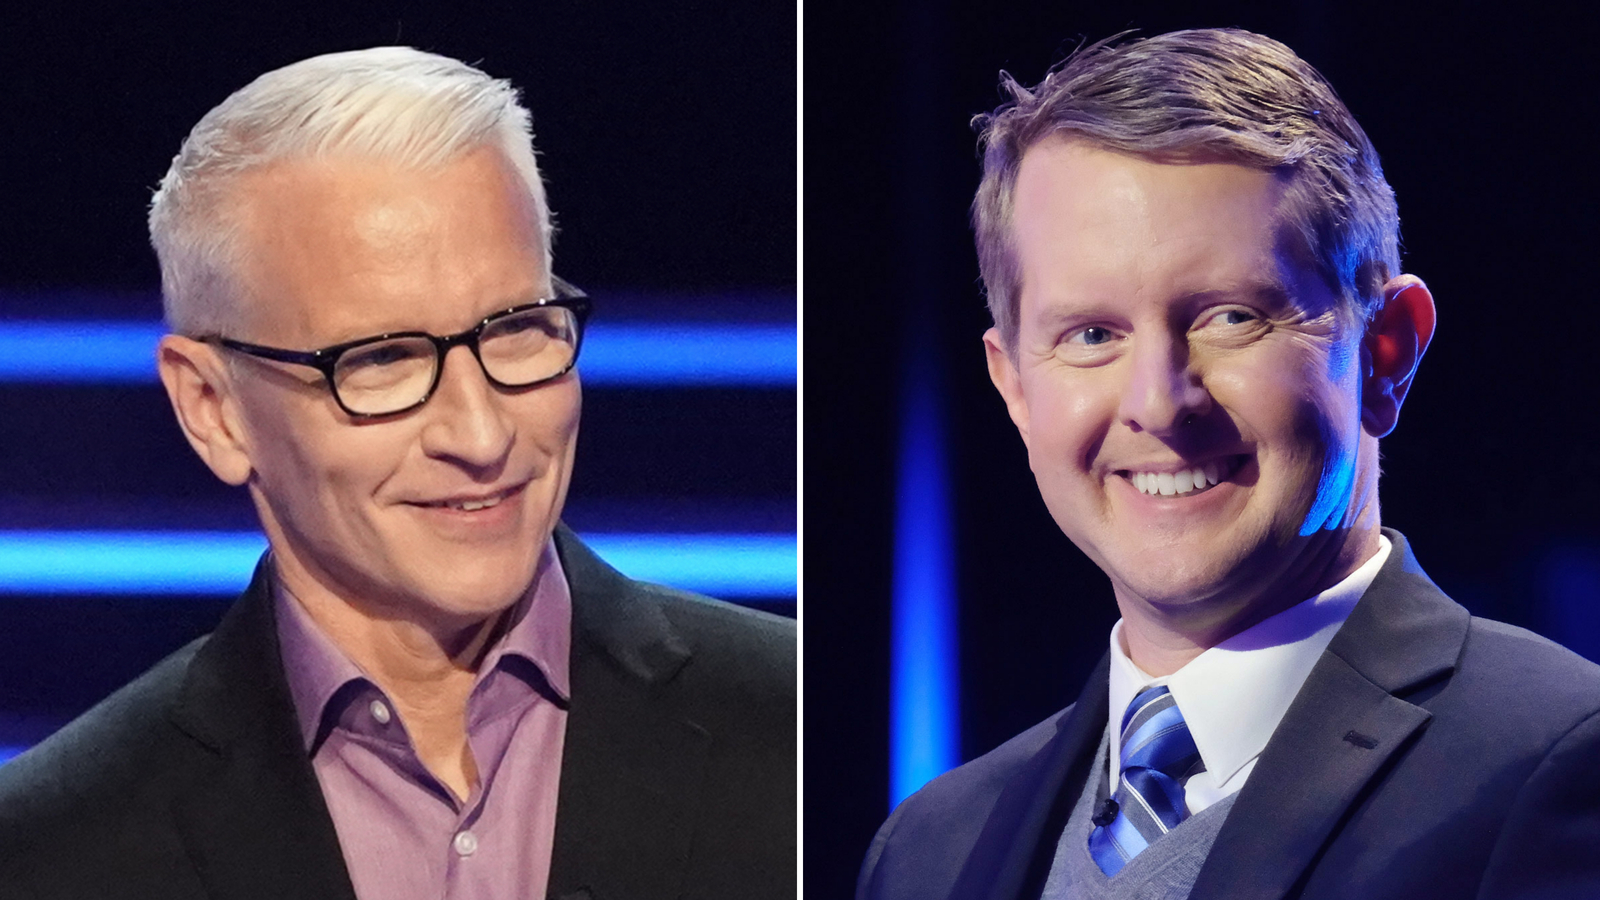 Anderson Cooper gets advice from Ken Jennings before guest-hosting 'Jeopardy!'